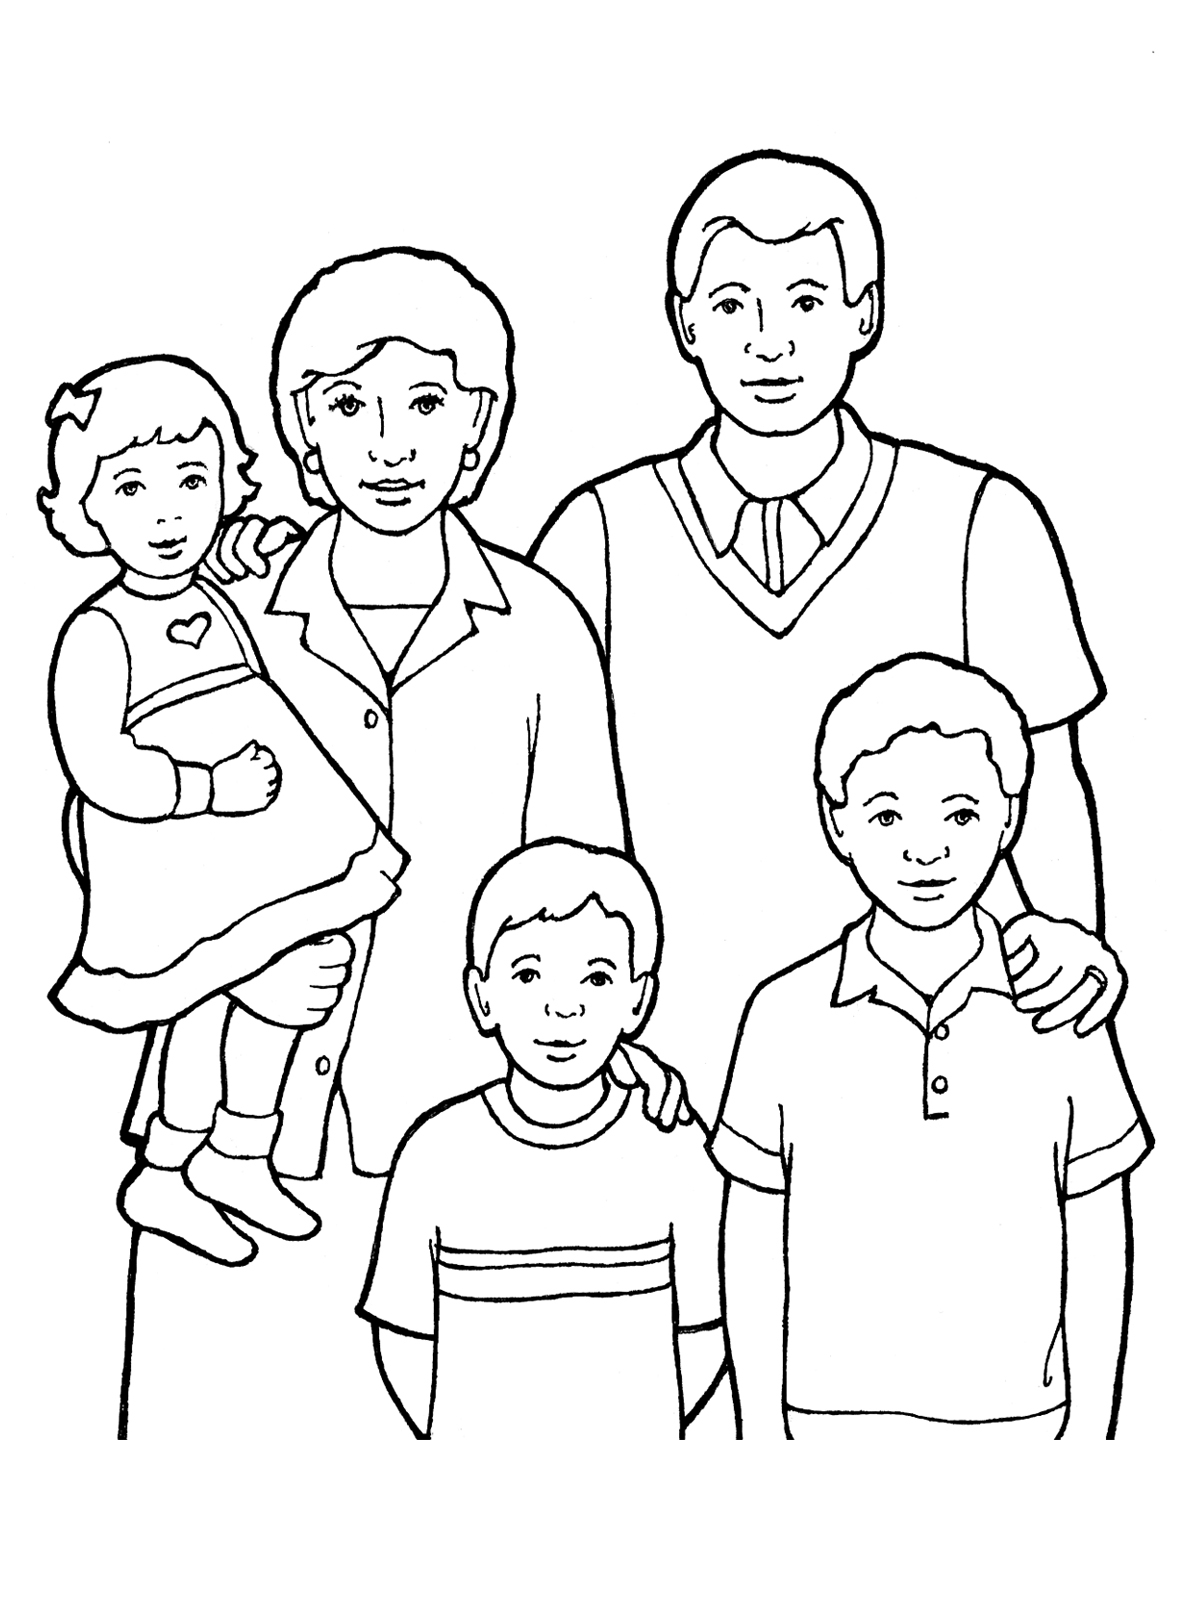 coloring picture of family family members drawing at getdrawings free download picture coloring of family